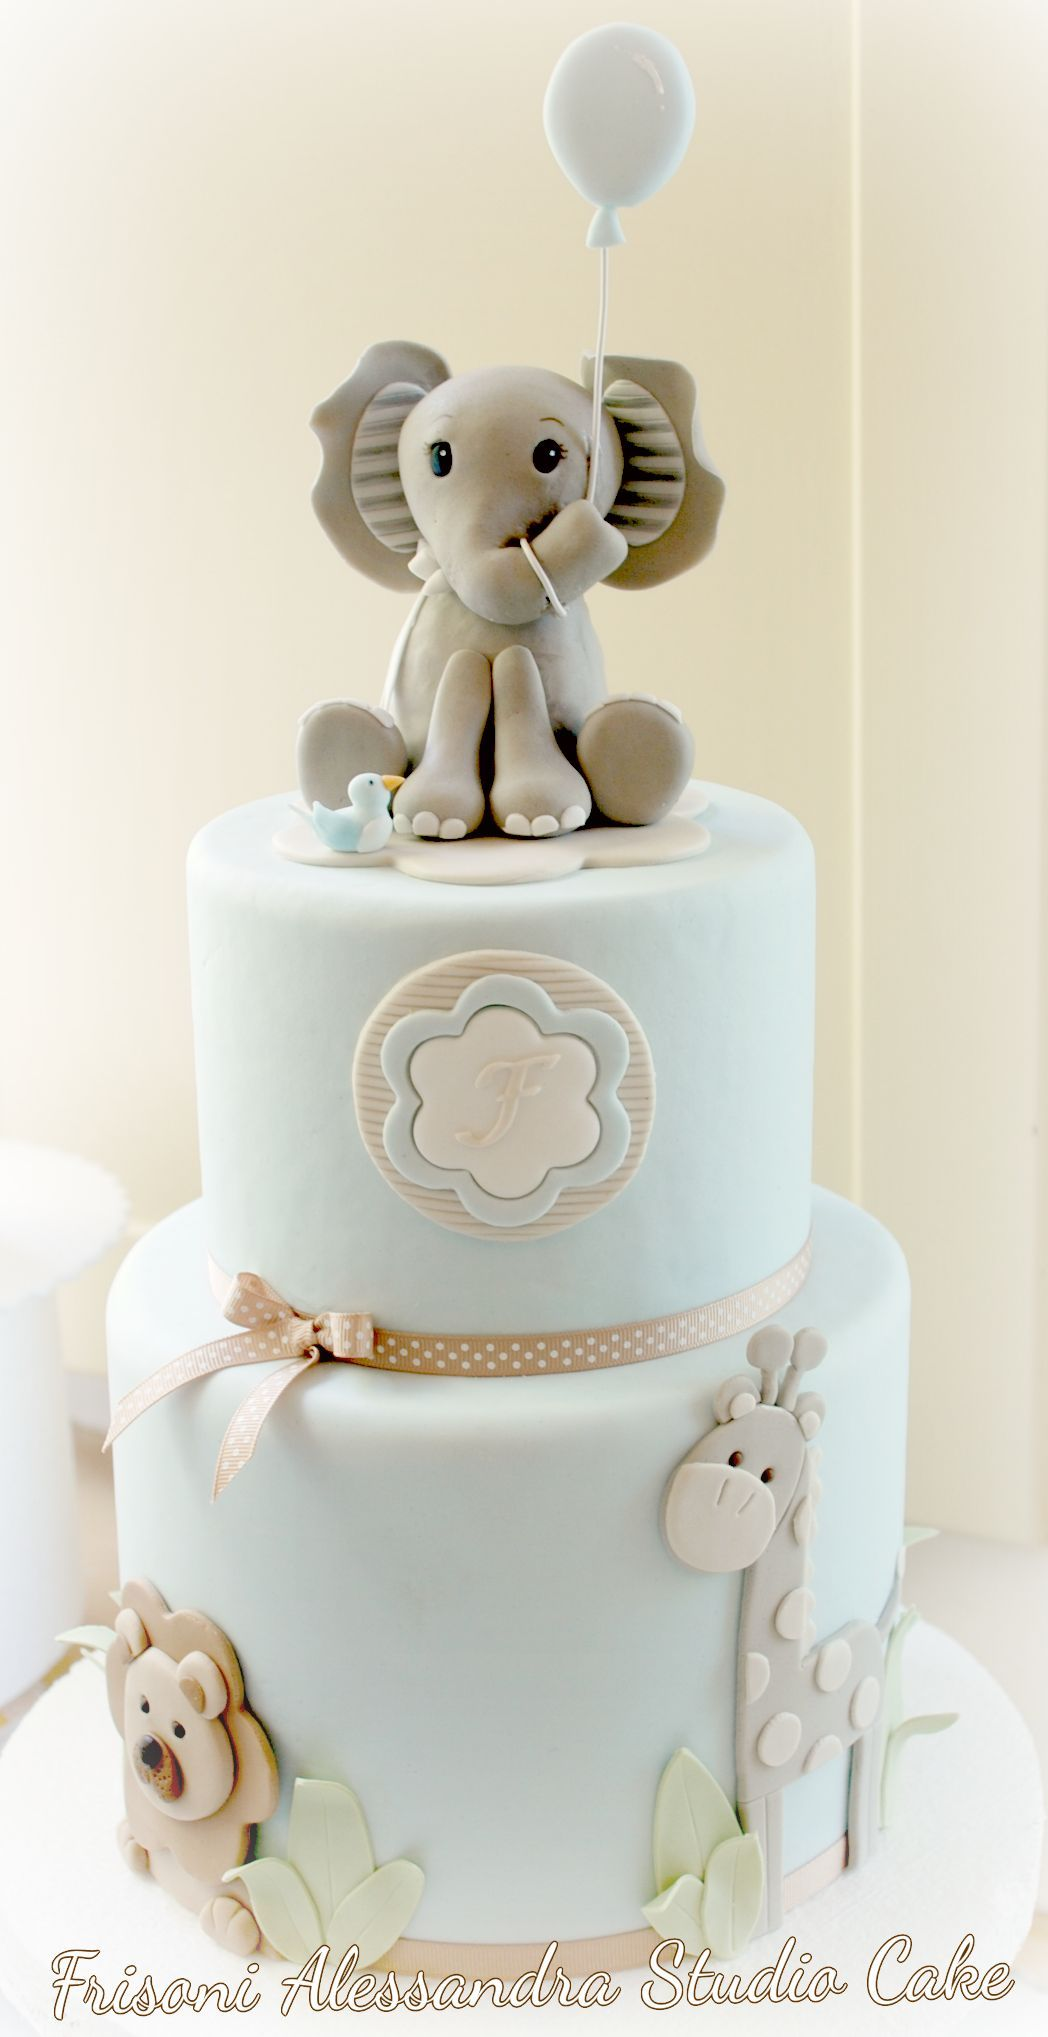 Frisoni alessandra studio cake what baby shower mama for Animal themed bathroom decor